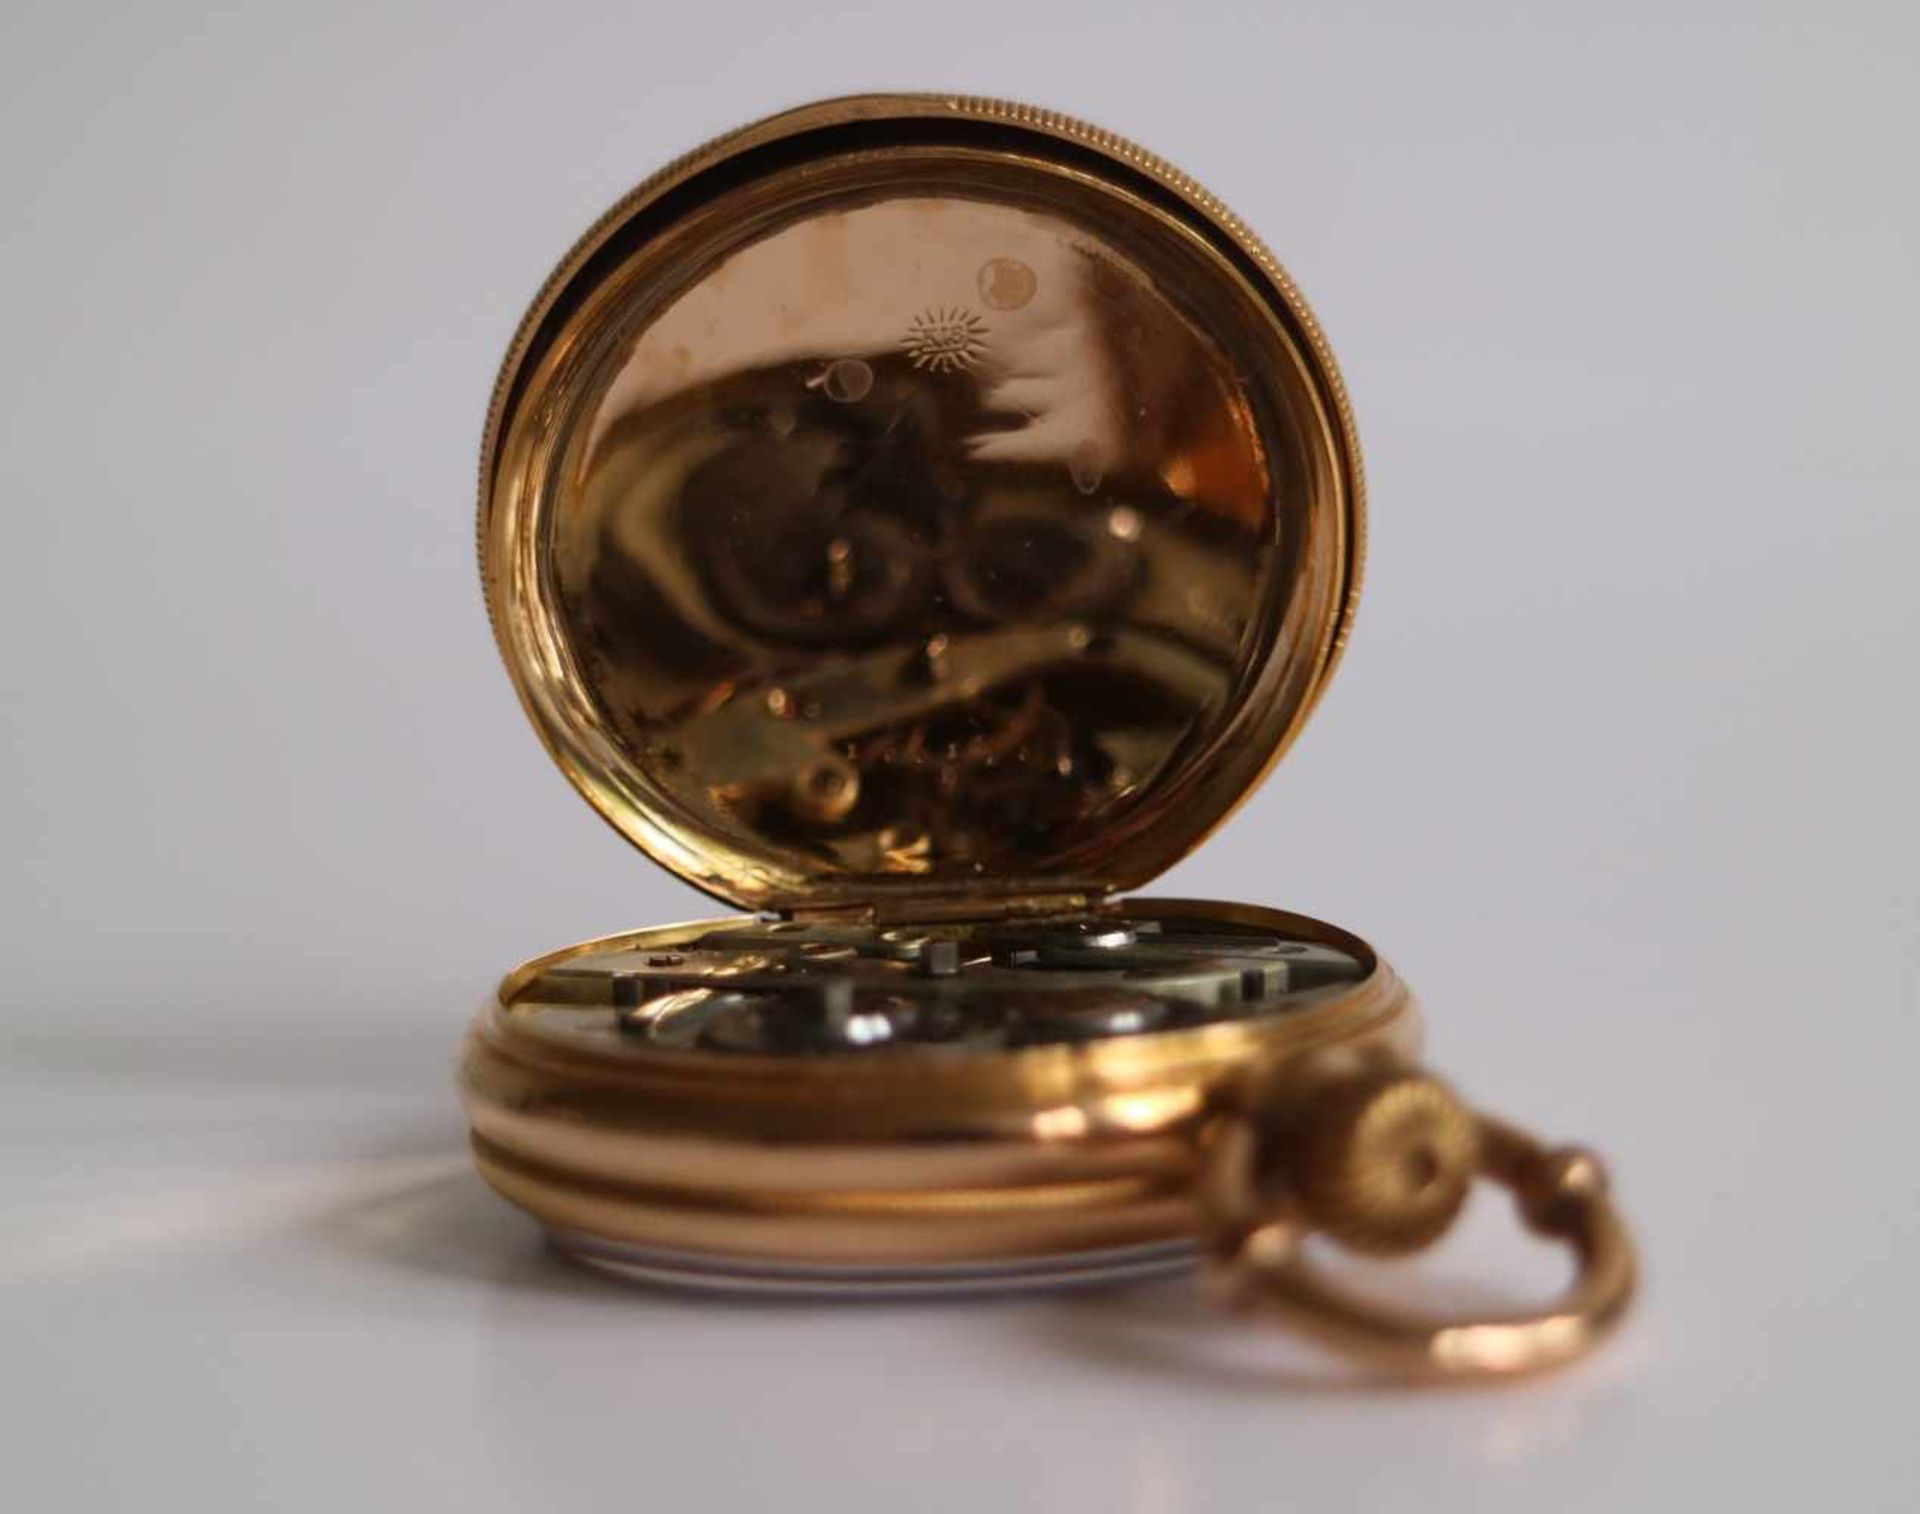 Los 535 - Gold pocket watch Pateck Numbered 18K, circa 1880 dia 4,5 H 6,5 cm